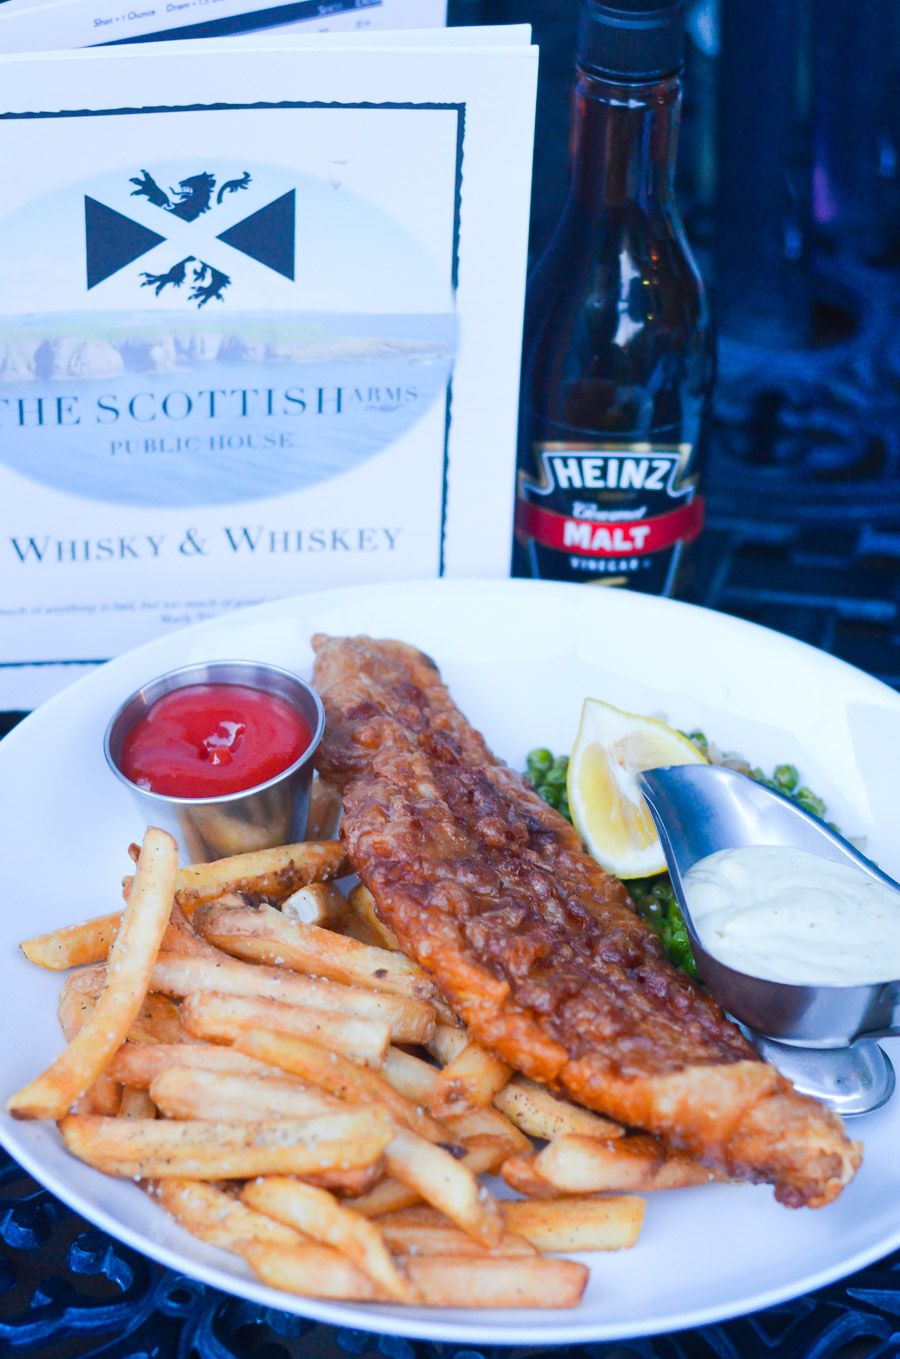 Where to Eat in St. Louis | Restaurant Guide | The Scottish Arms